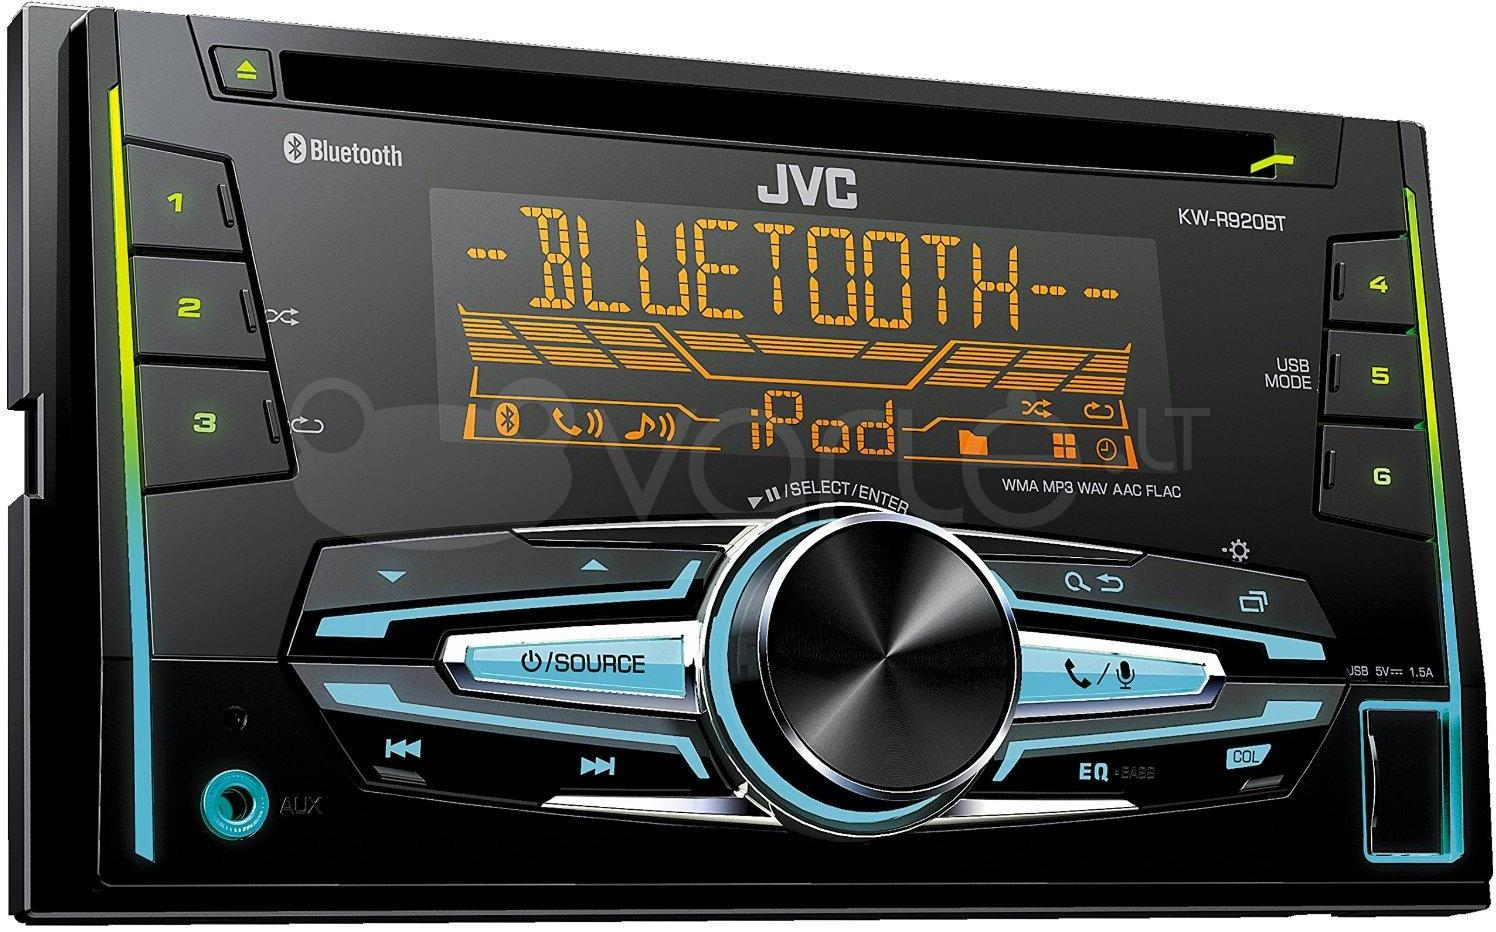 automagnetola jvc kw r920bt bluetooth double din stereo. Black Bedroom Furniture Sets. Home Design Ideas